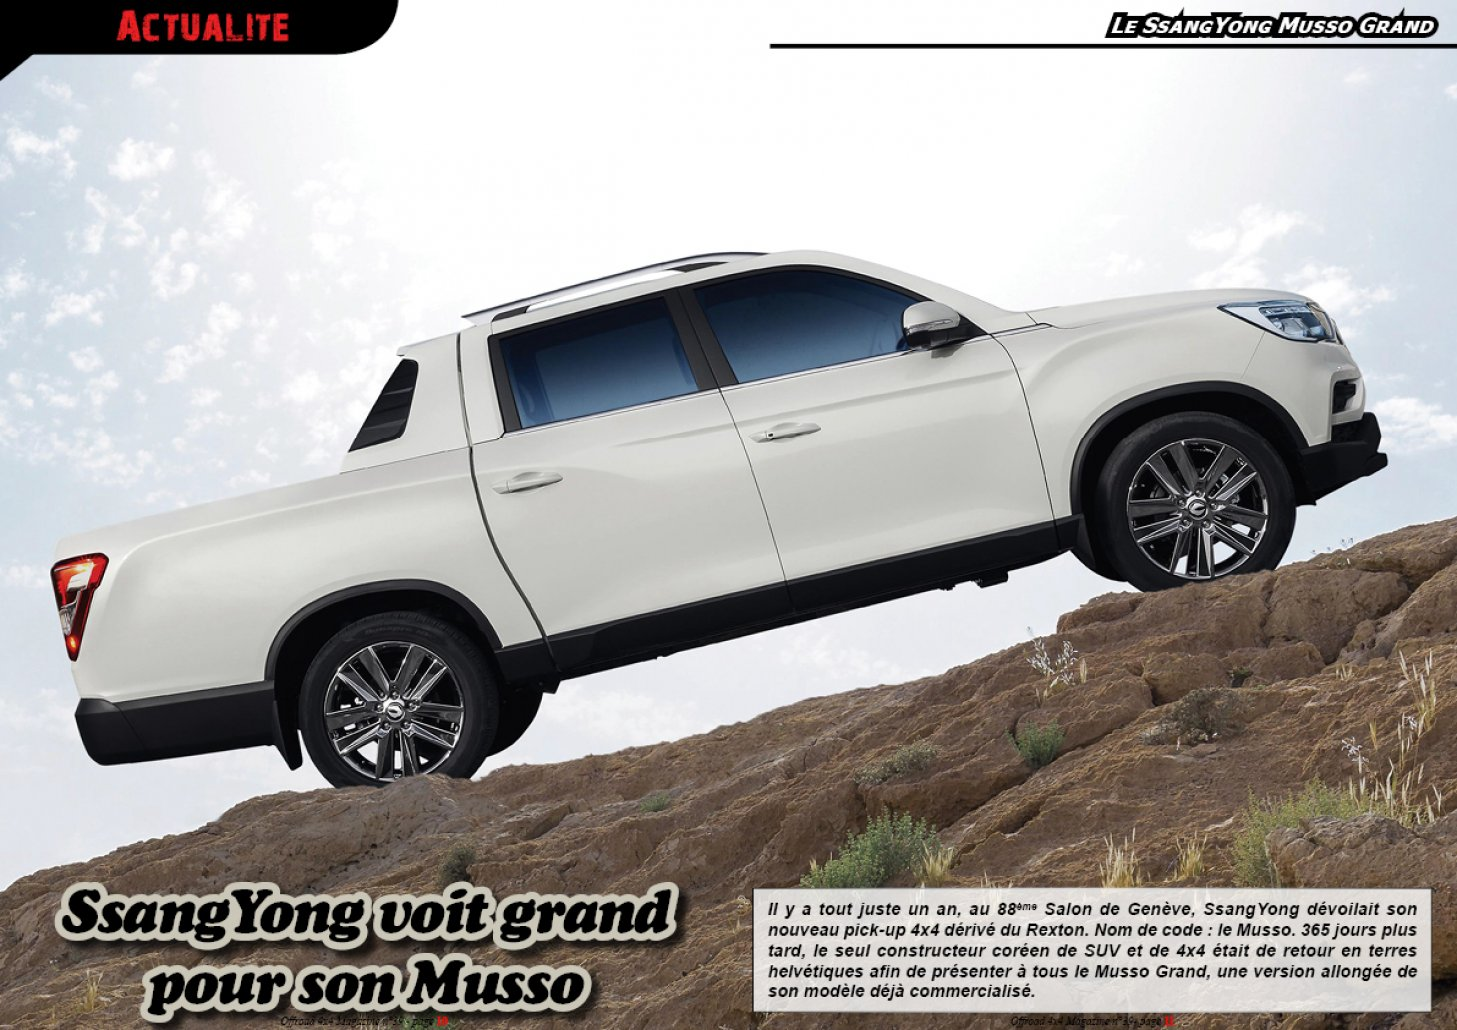 Le SsangYong Musso Grand